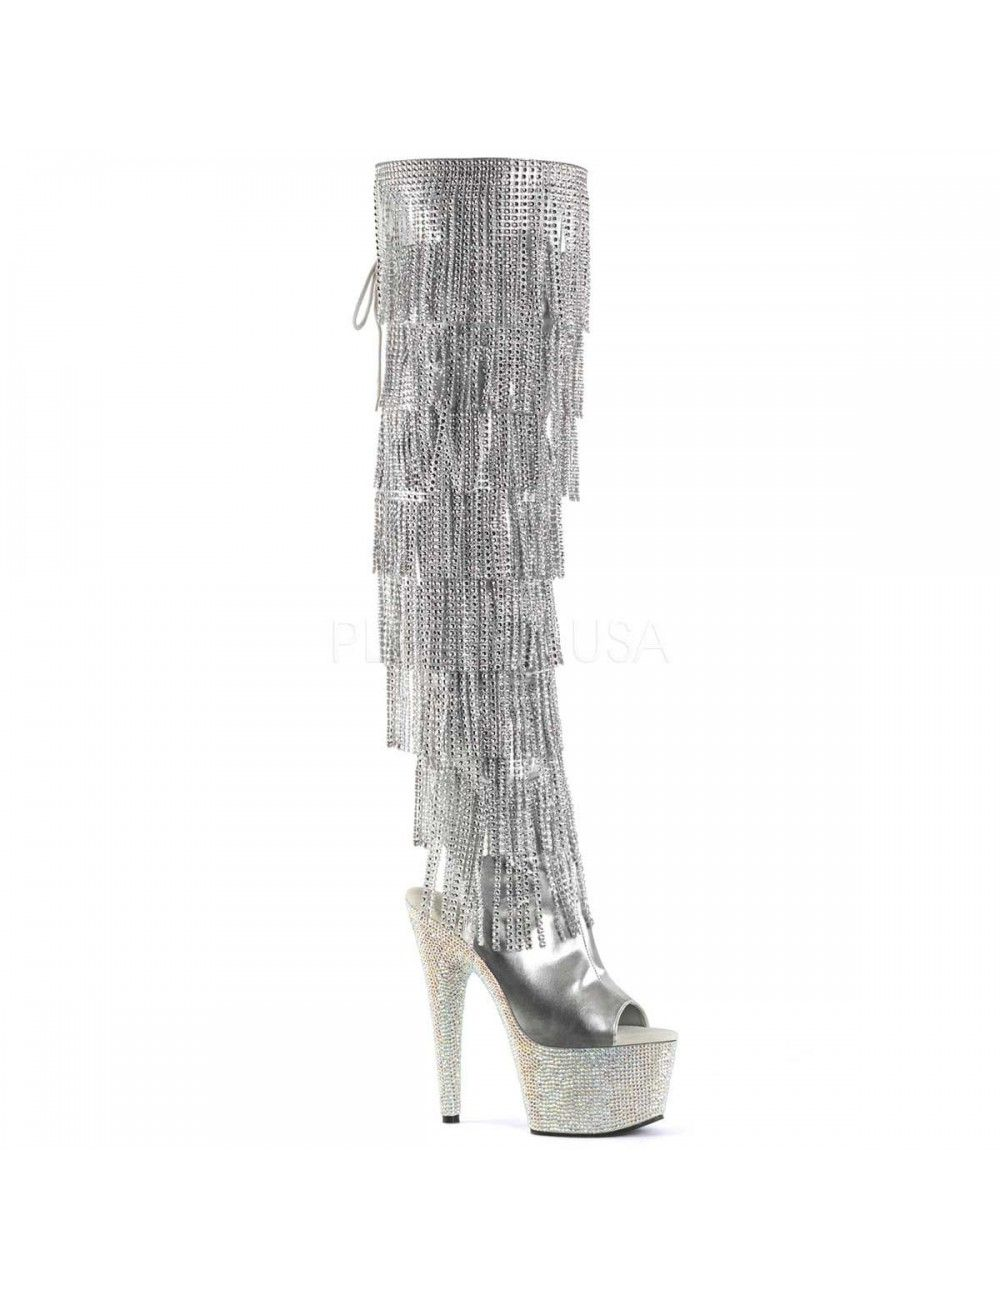 Cuissardes Argent Franges Strass Luxe Bejeweled Pleaser